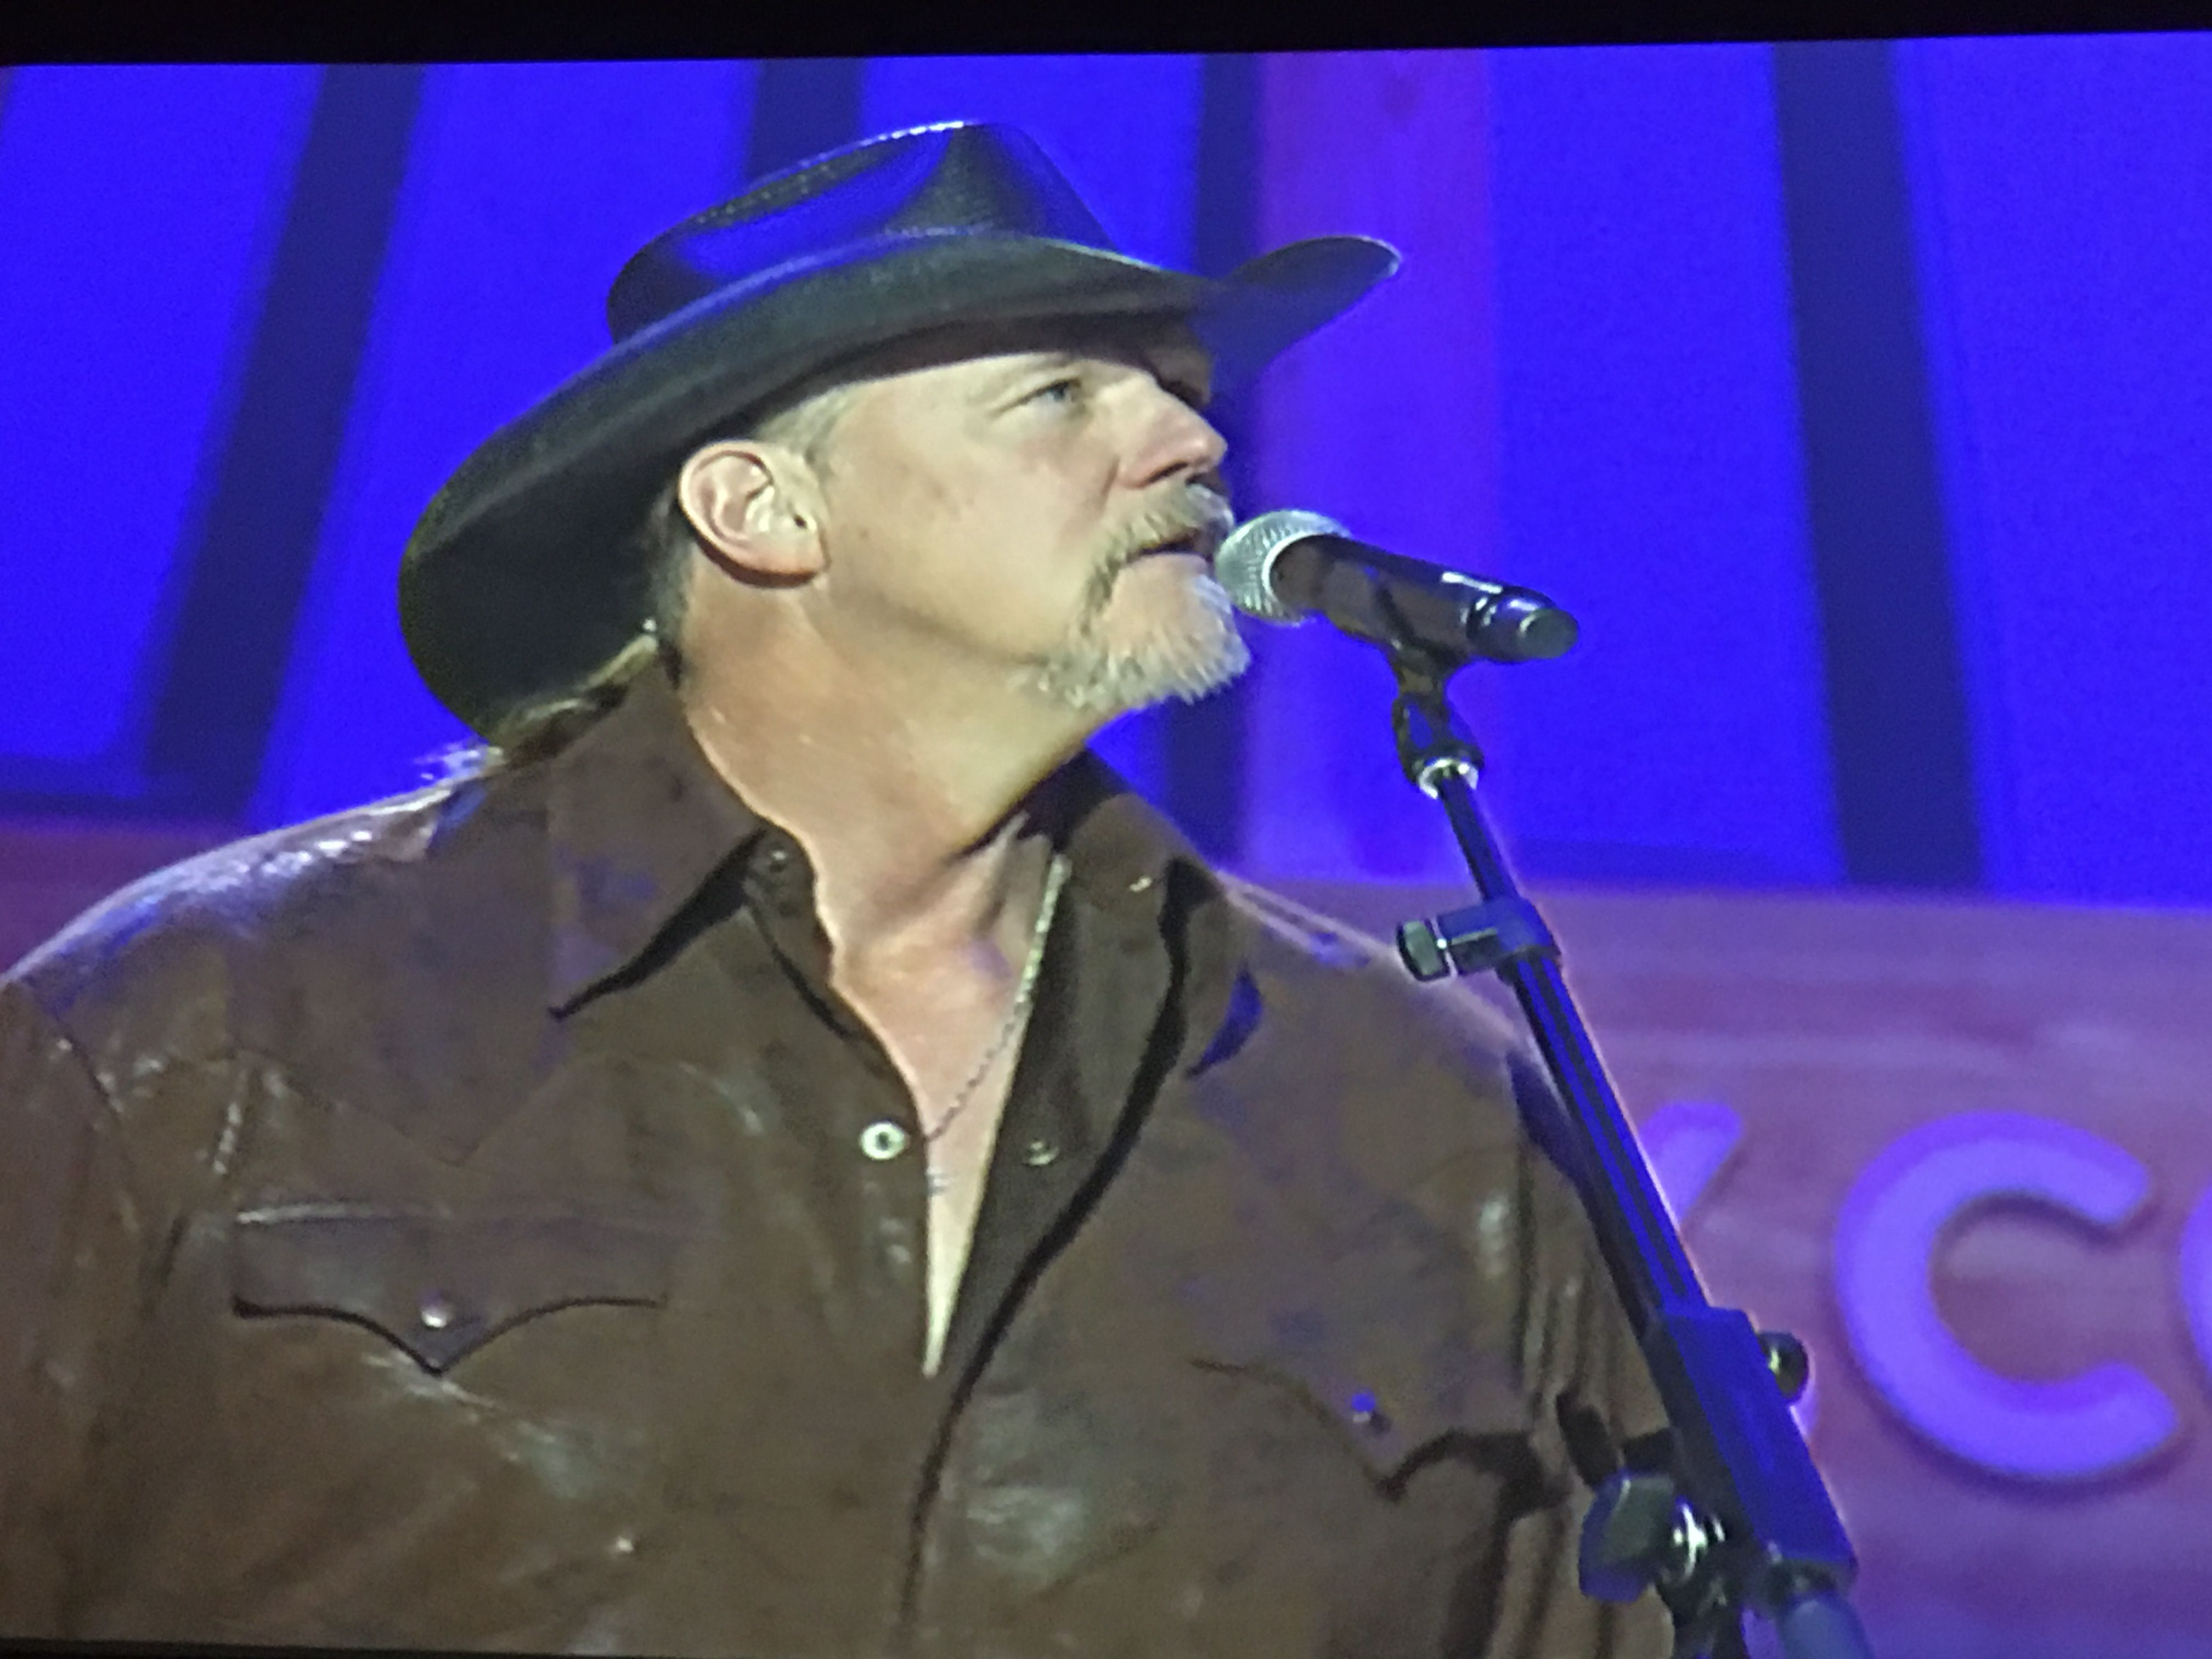 Trace Adkins at the Grand Ole Opry Country Music Show